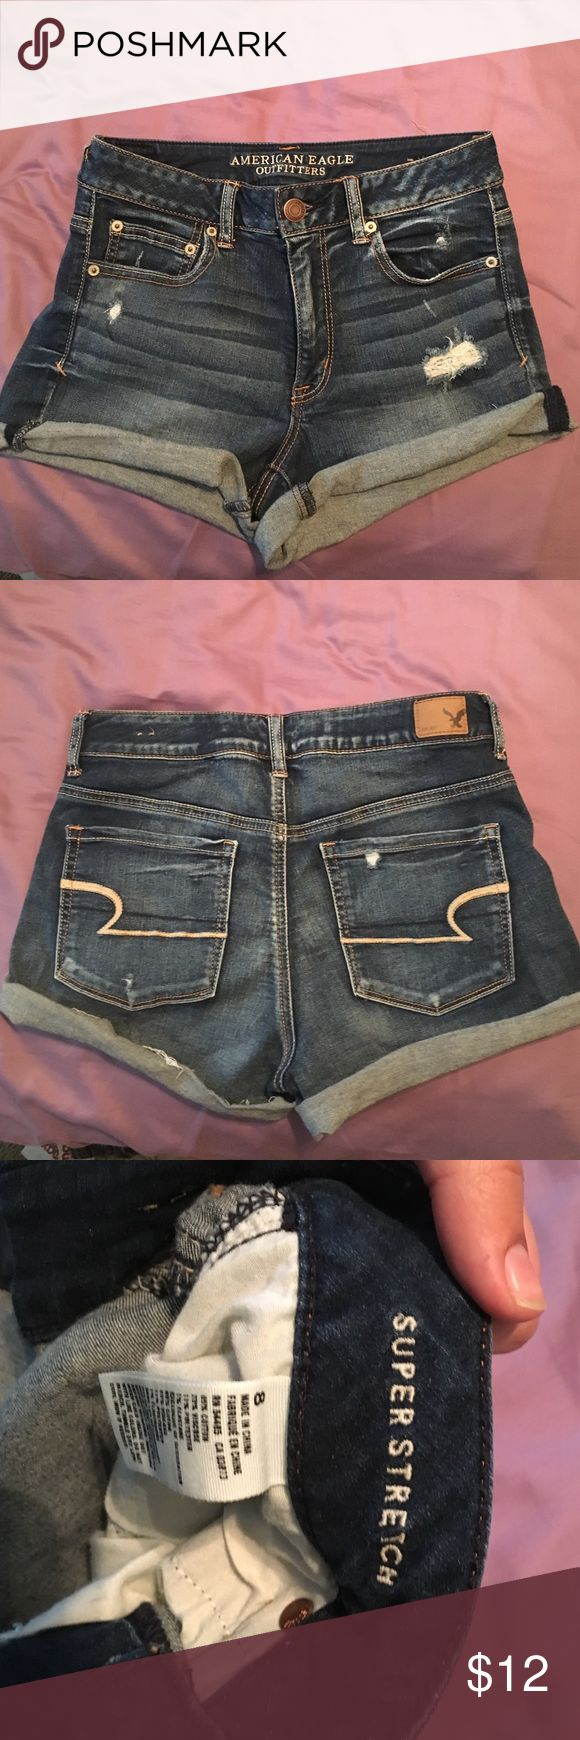 High waisted Jean shorts from American Eagle Super cute high waisted cuffed denim shorts from Ameican eagle. Only worn once or twice so great condition! American Eagle Outfitters Shorts Jean Shorts